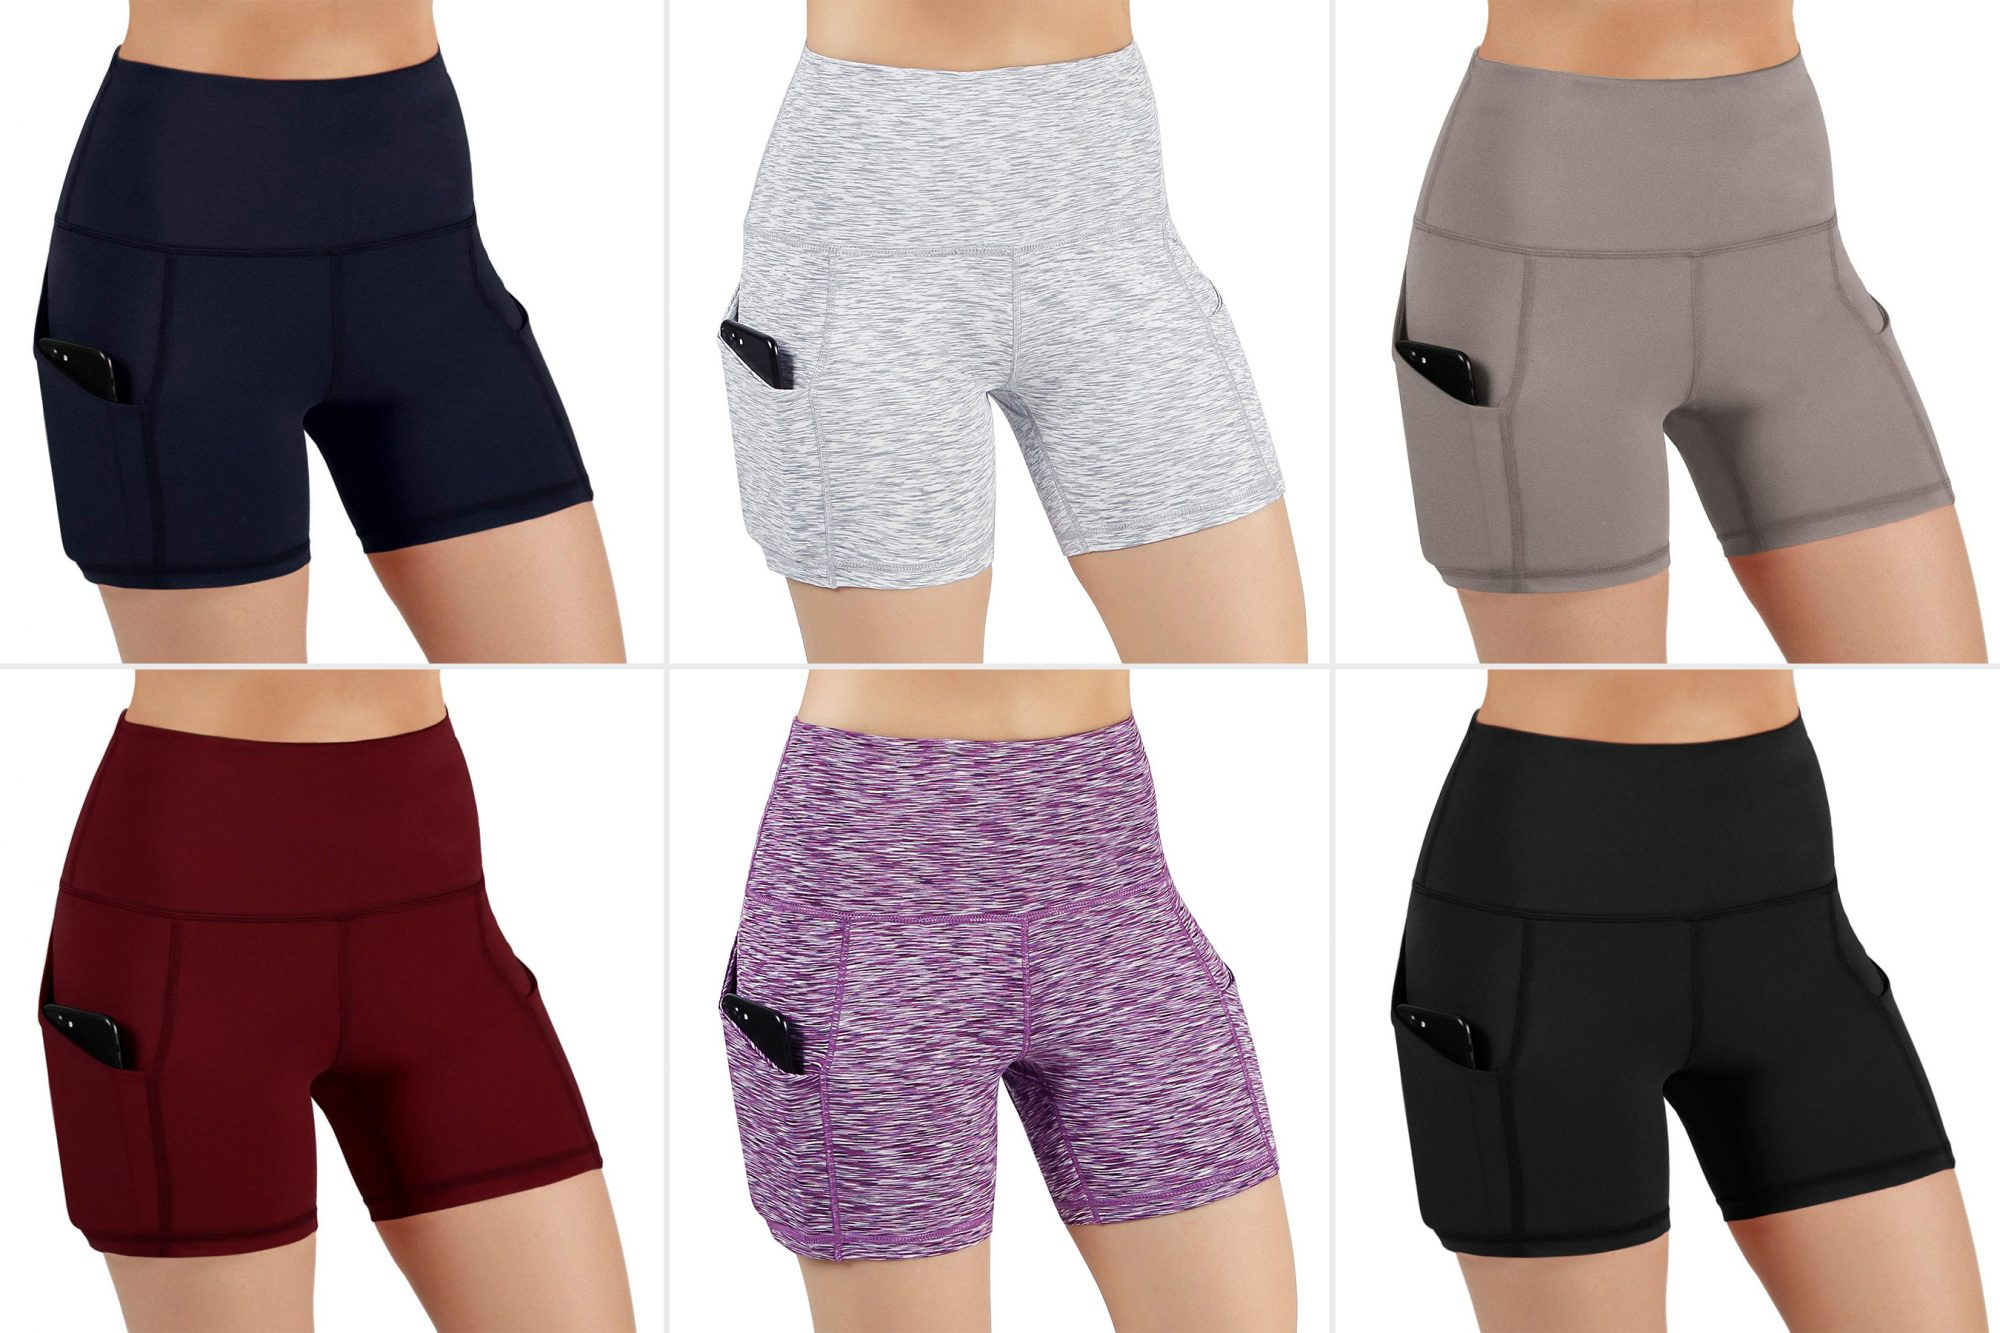 The Perfect Under Dress Anti-Chafing Shorts Cost Just $6  PEOPLE.com